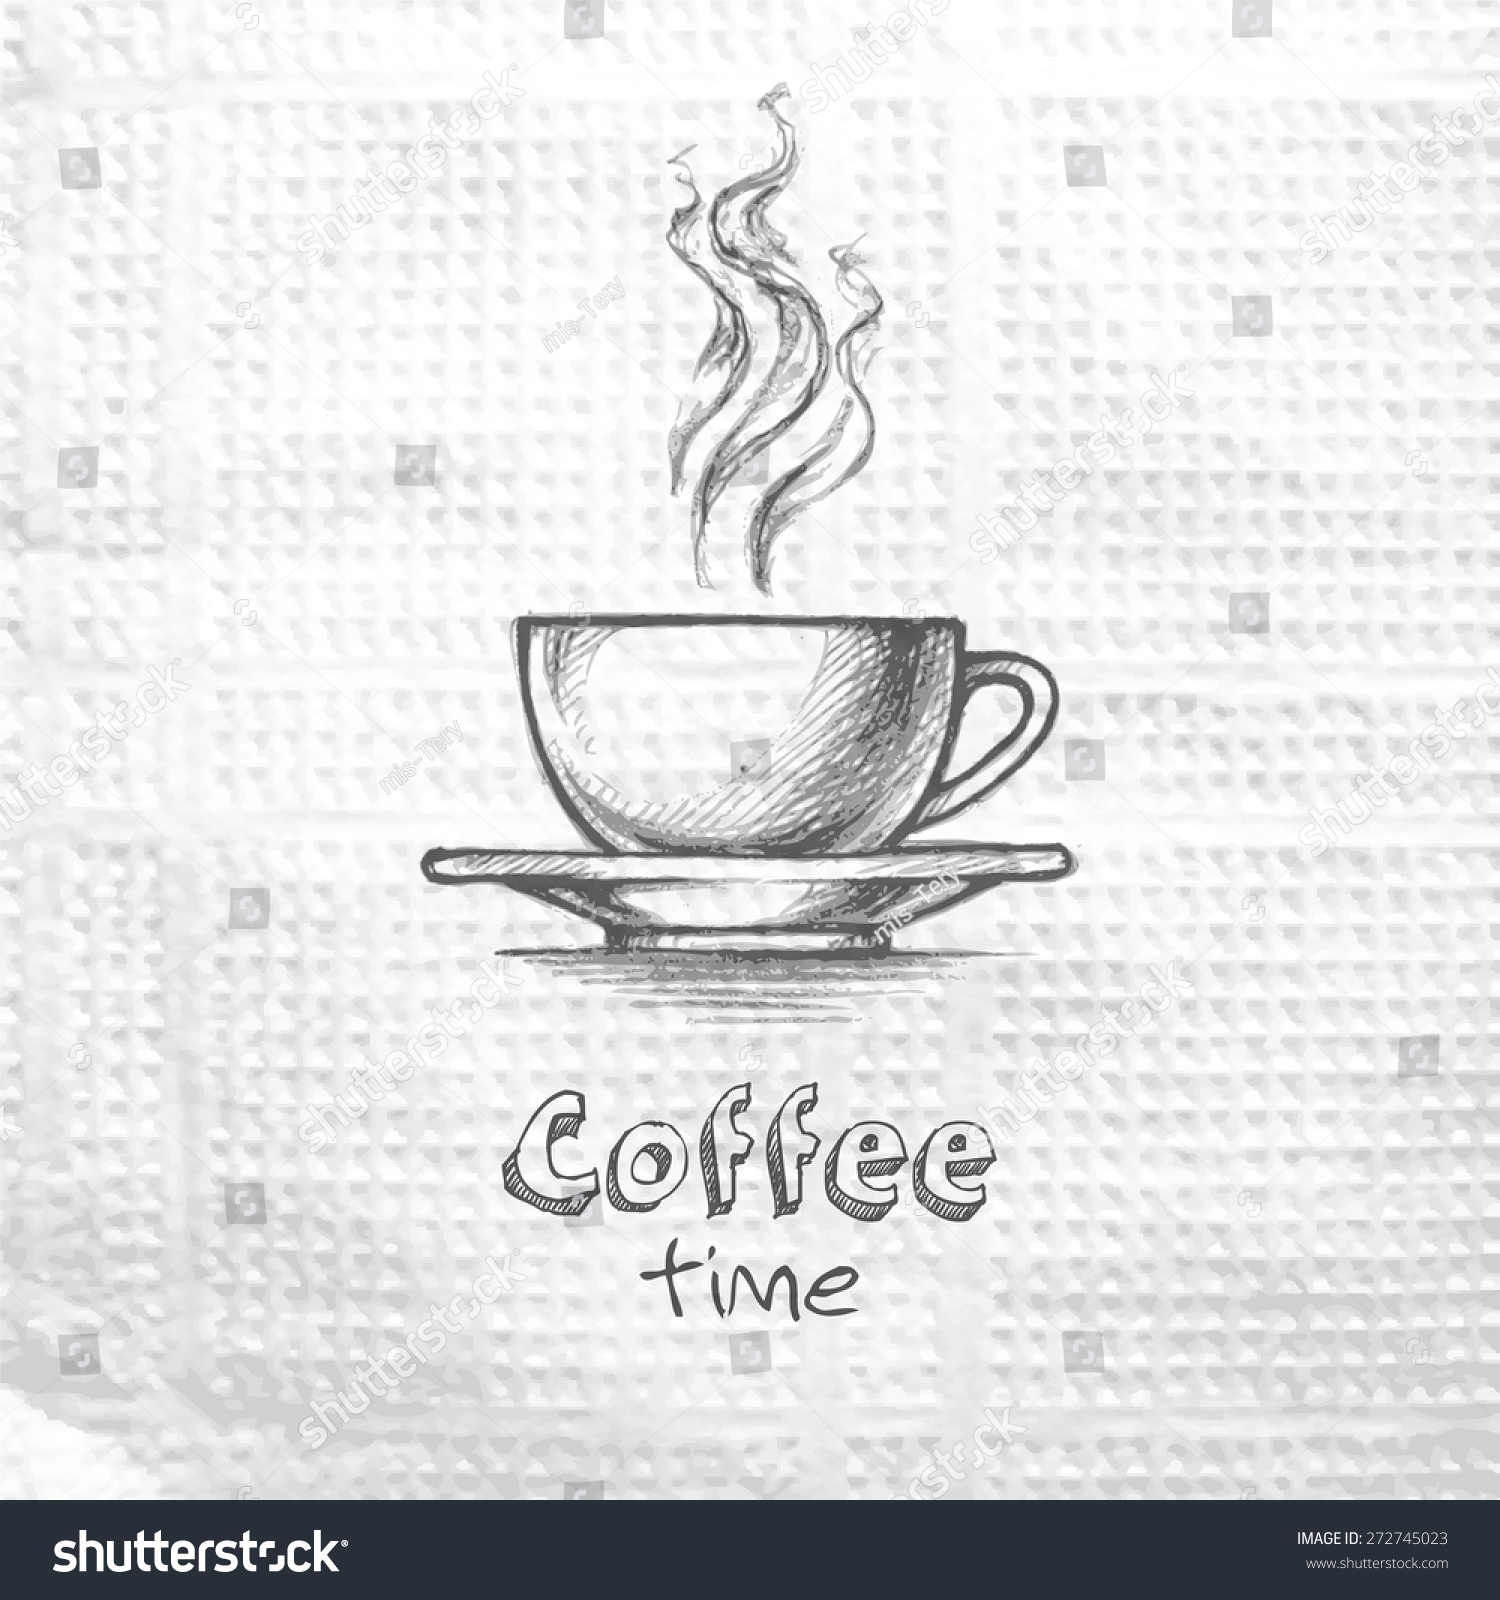 Coffee cup sketch - Sketch Hand Drawn Image Of Cup With Coffee Coffee Time Message On A Paper